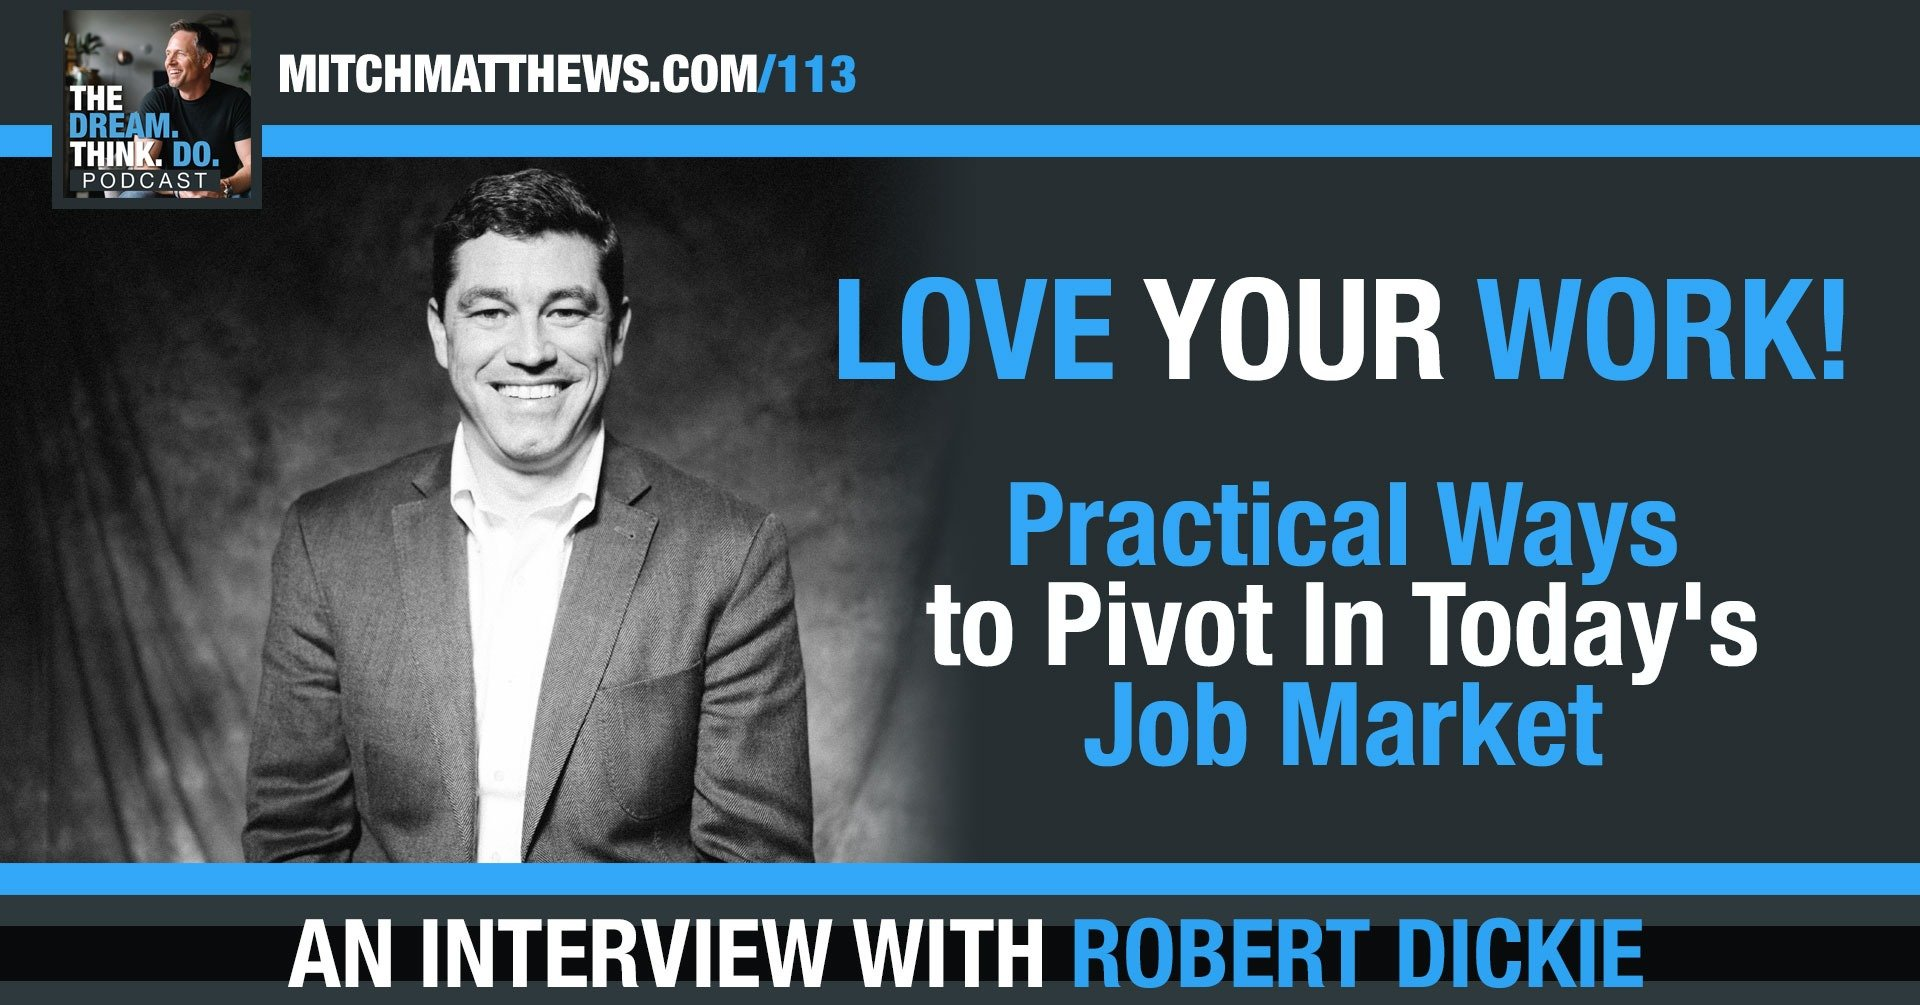 LOVE YOUR WORK! Practical Ways to Pivot In Today's Job Market Robert Dickie